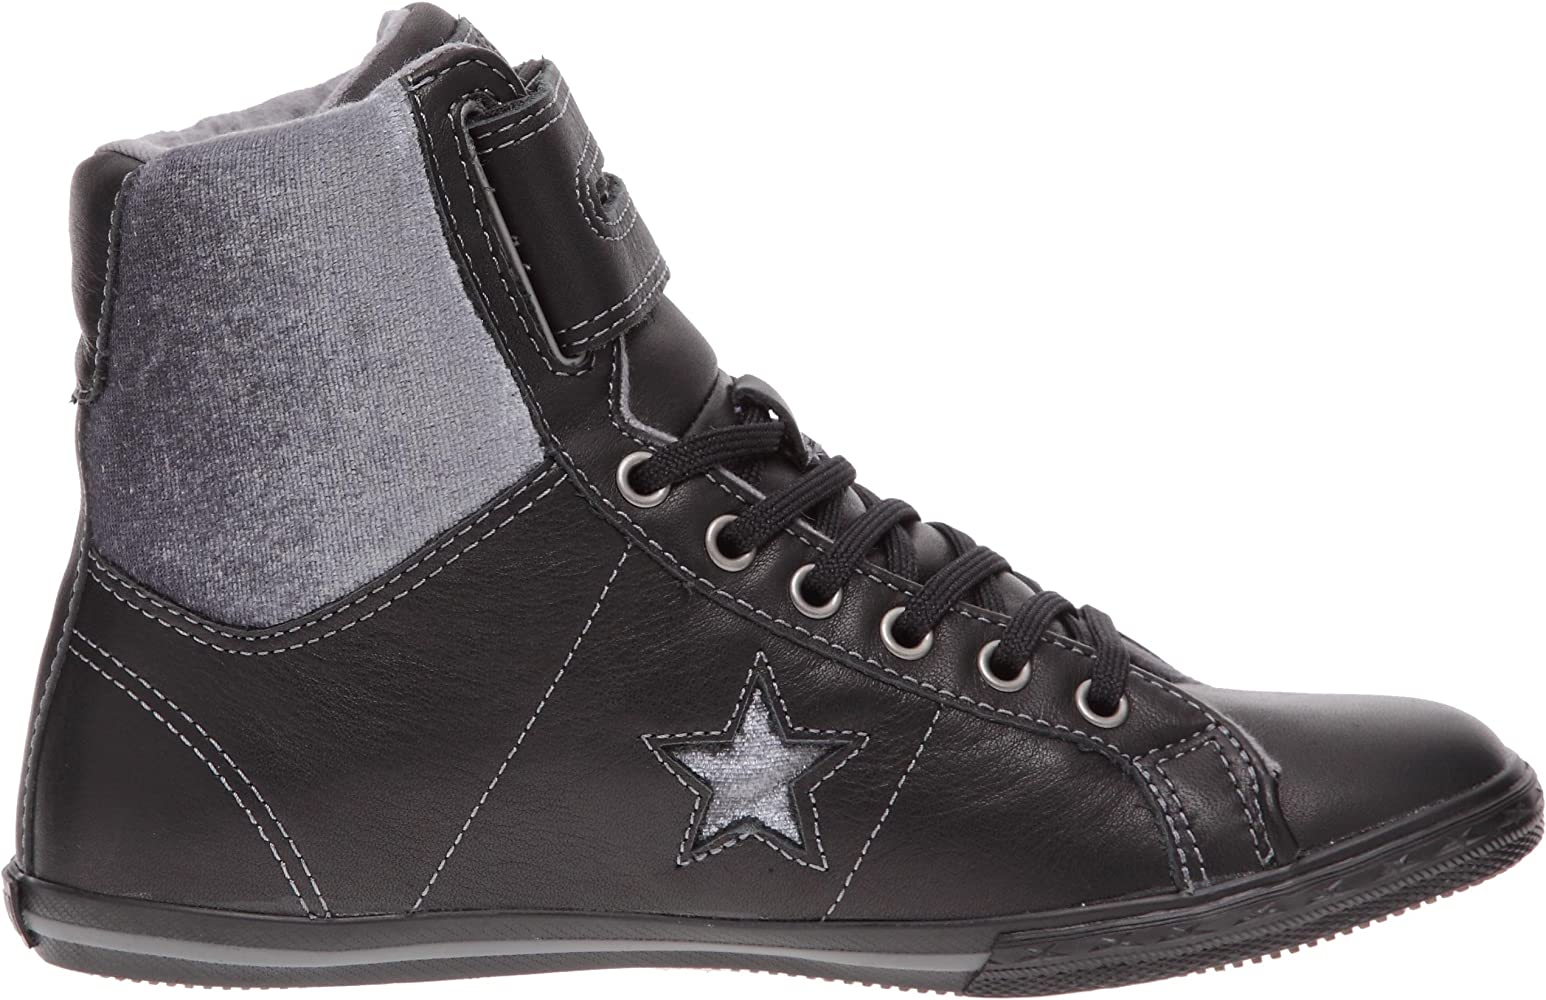 Converse One Star Low Profile Strap Hi, Baskets mode Femme